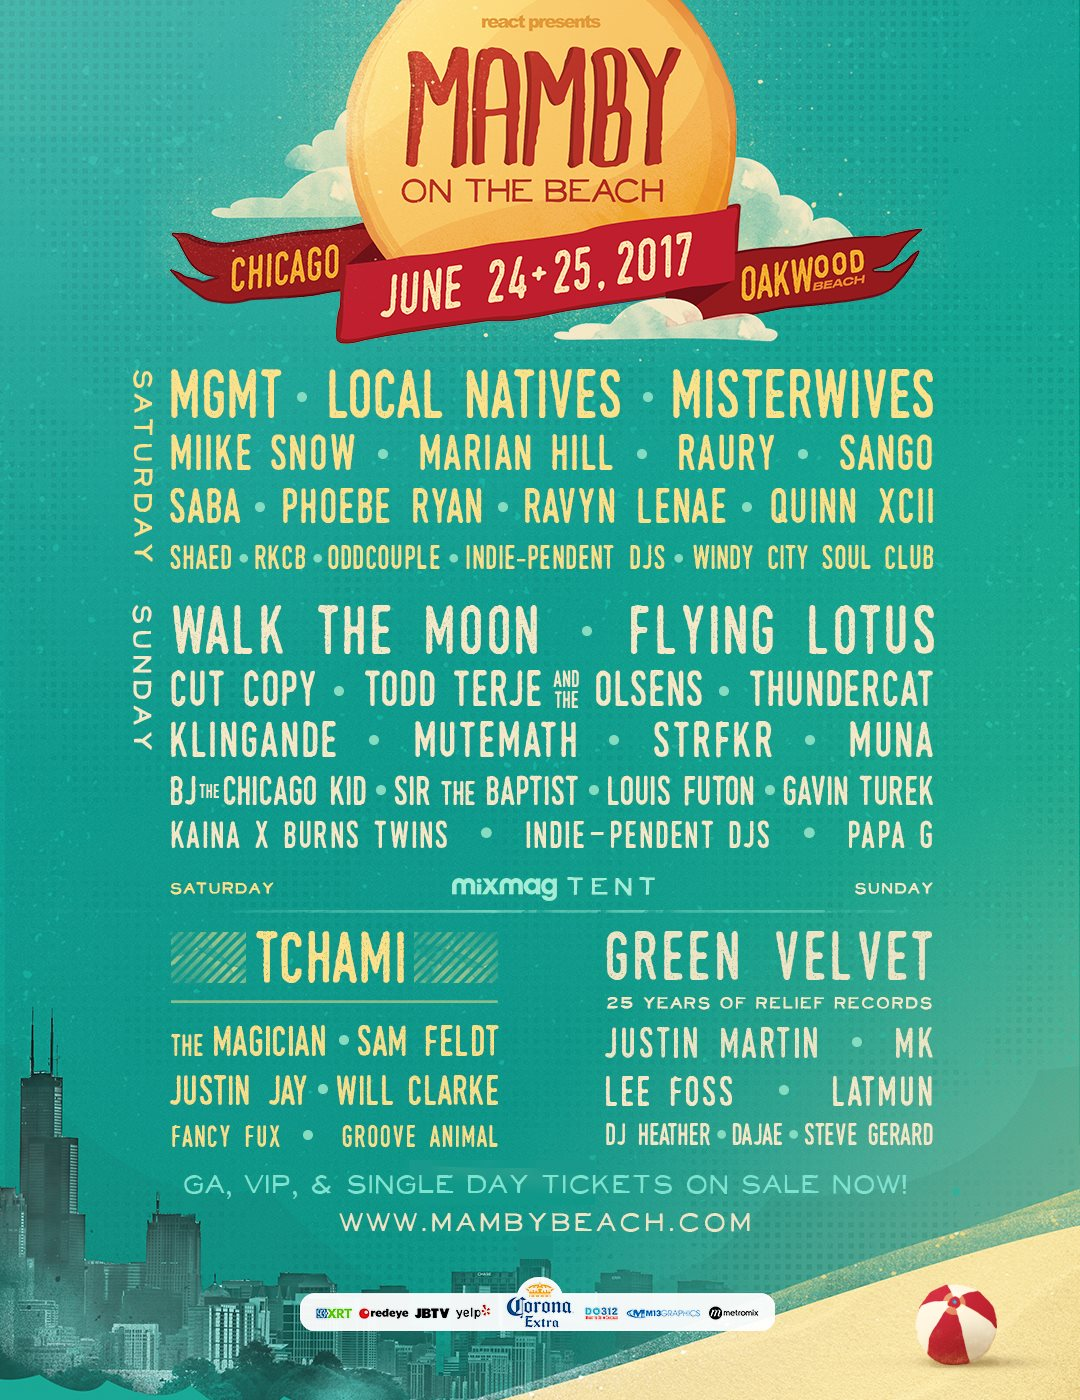 Mamby On The Beach 2017 lineup.jpg